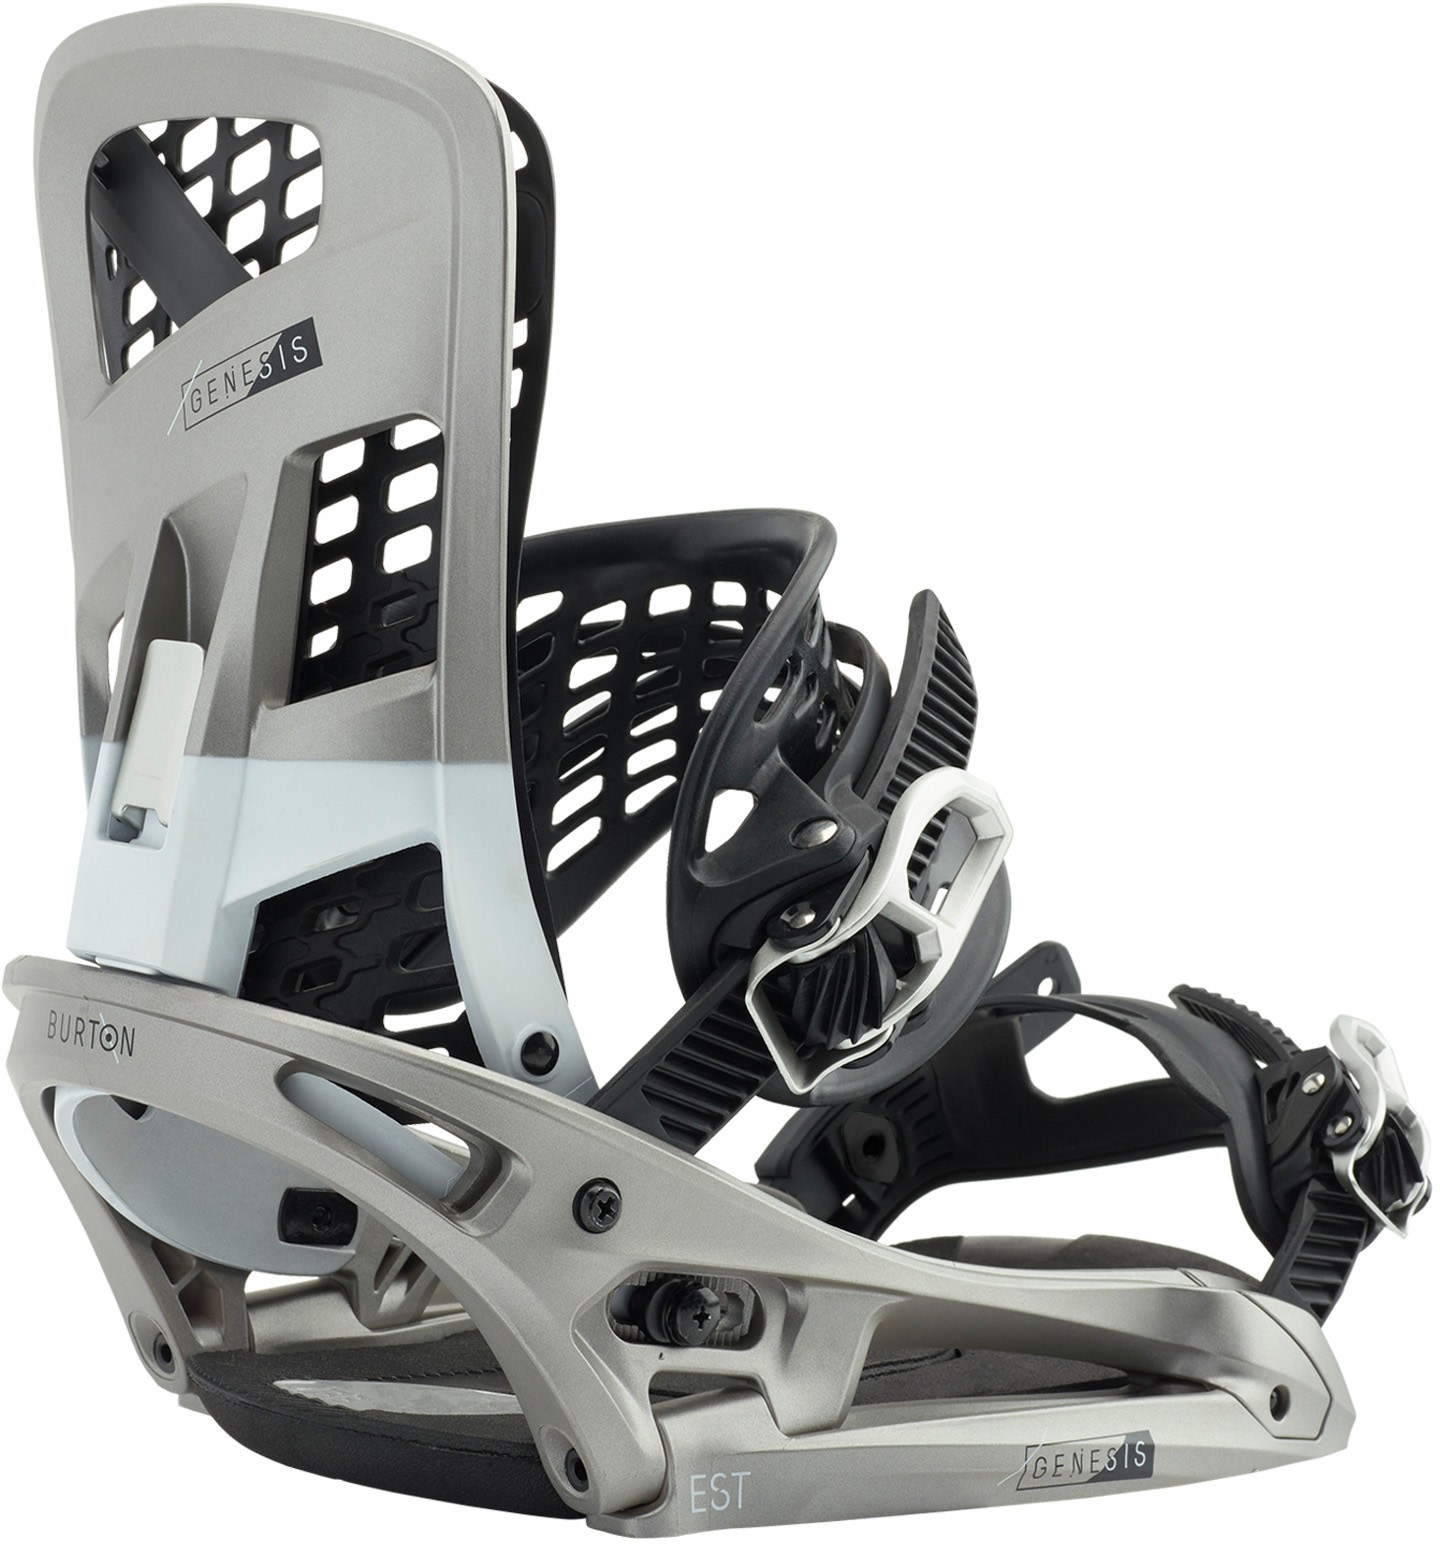 Burton Genesis EST Snowboard Bindings - Men's - 2018/2019